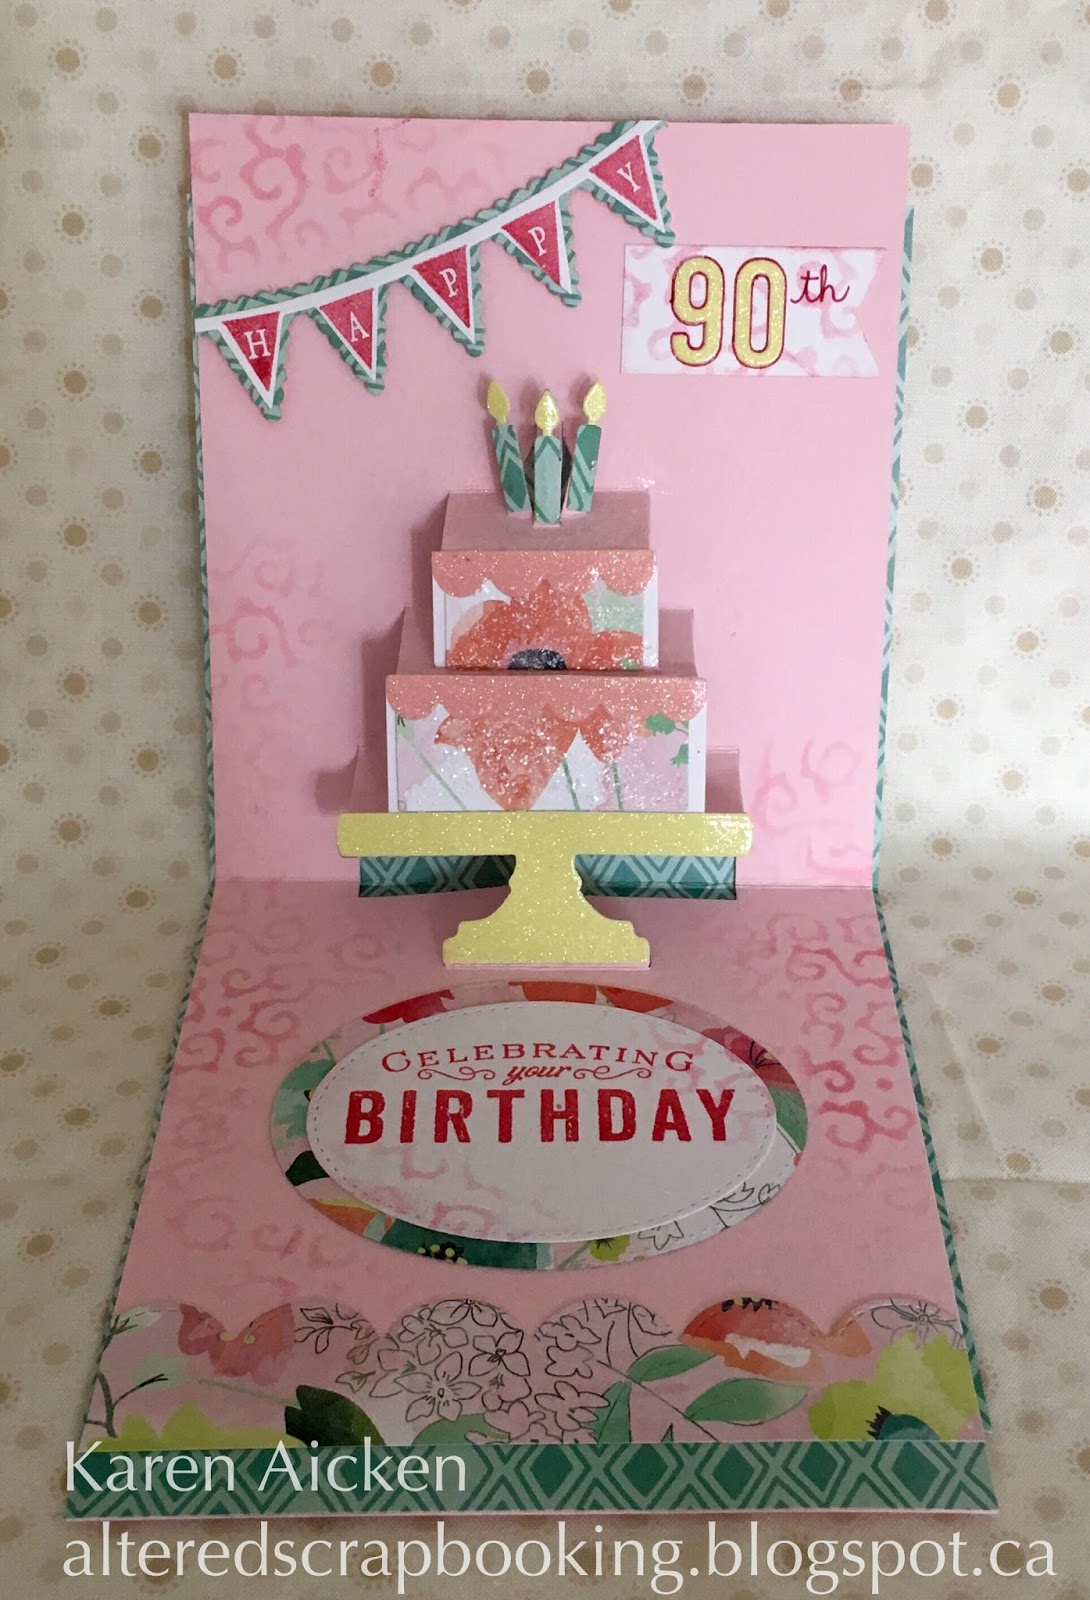 Altered scrapbooking 90th birthday pop up cake card 90th birthday pop up cake card bookmarktalkfo Image collections